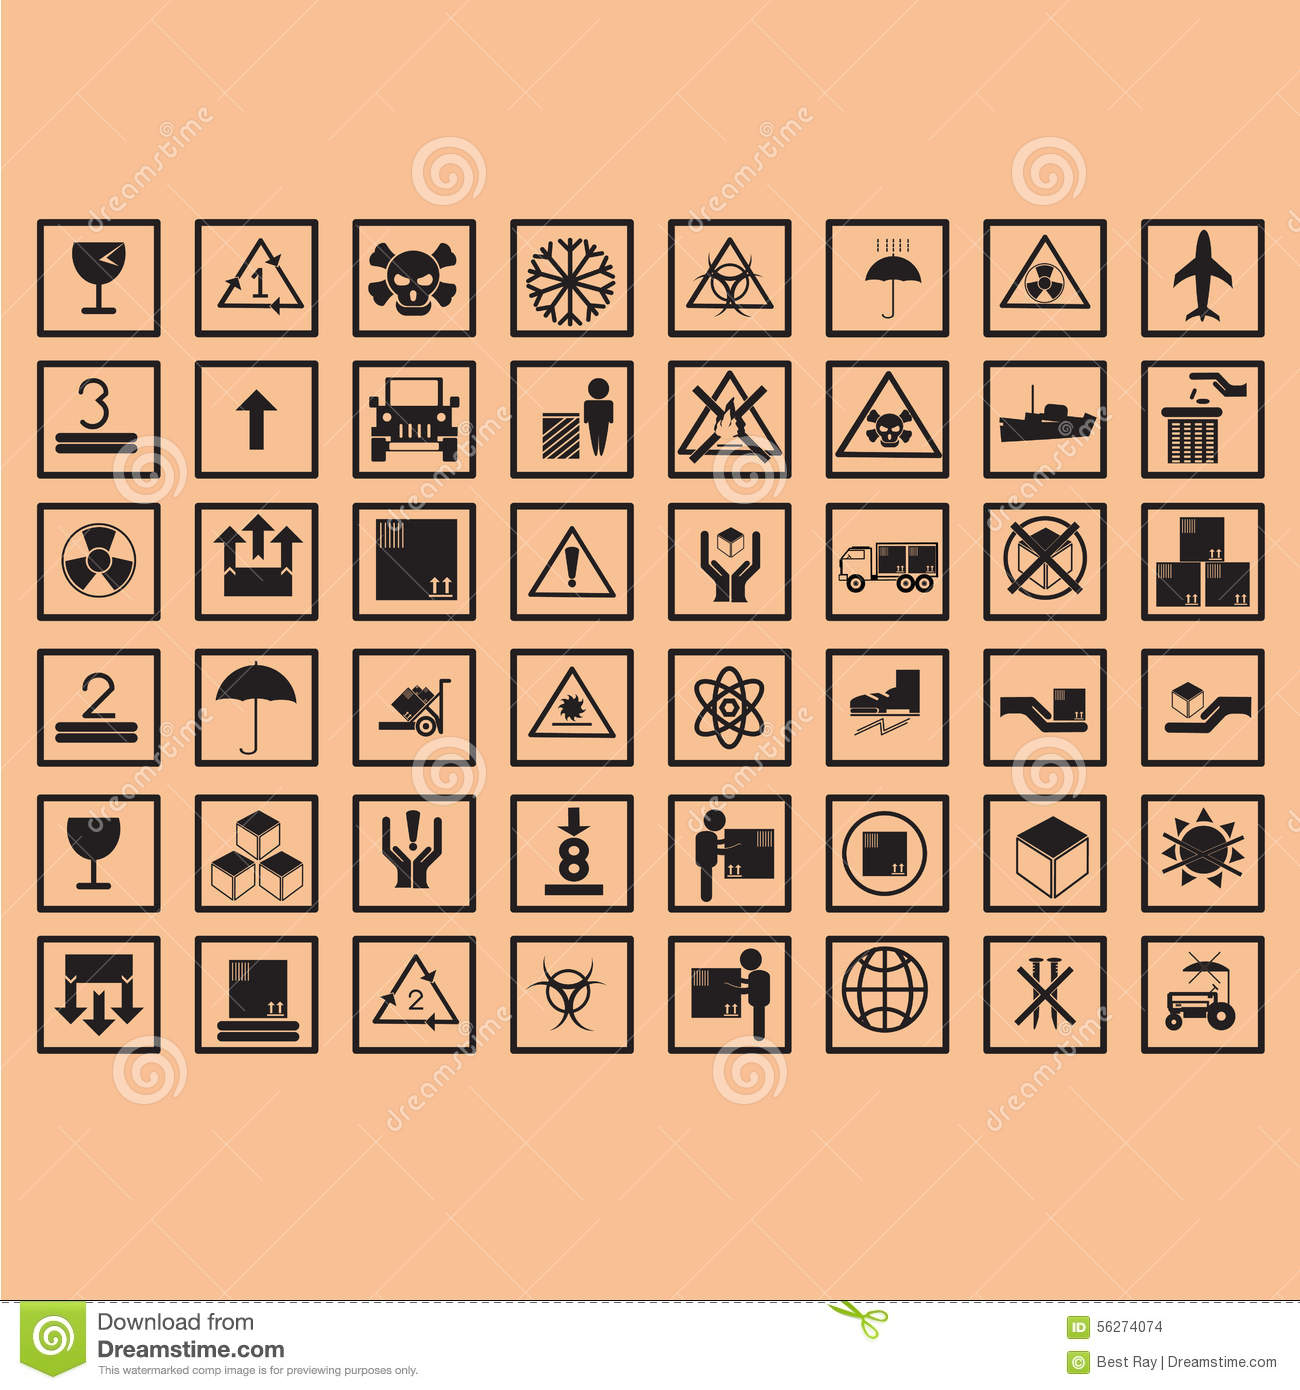 T12376 Attention A Lire Svp further Warning Icon likewise Caution danger exclamation fire flame flameable flammable hazard materials problem protection risk safe safety warning icon furthermore Warning Icon as well Warnzeichen 518277. on caution and warning icons